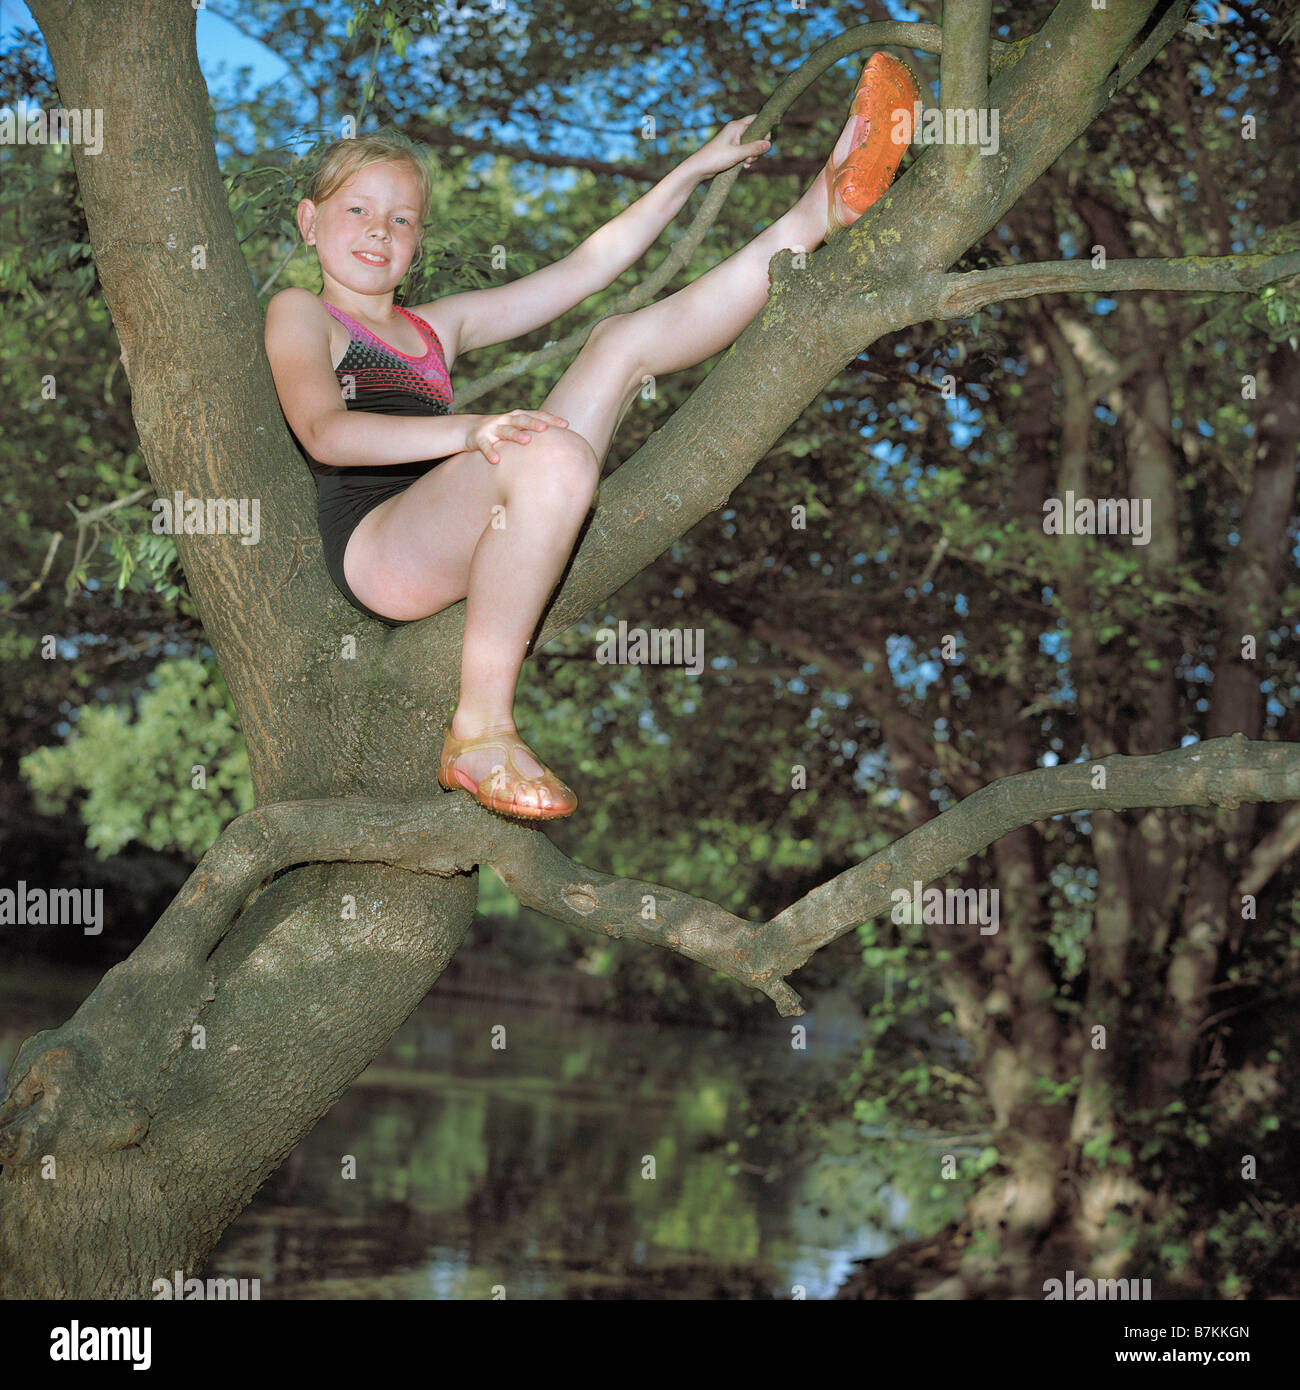 Girl perched in a tree over a river - Stock Image